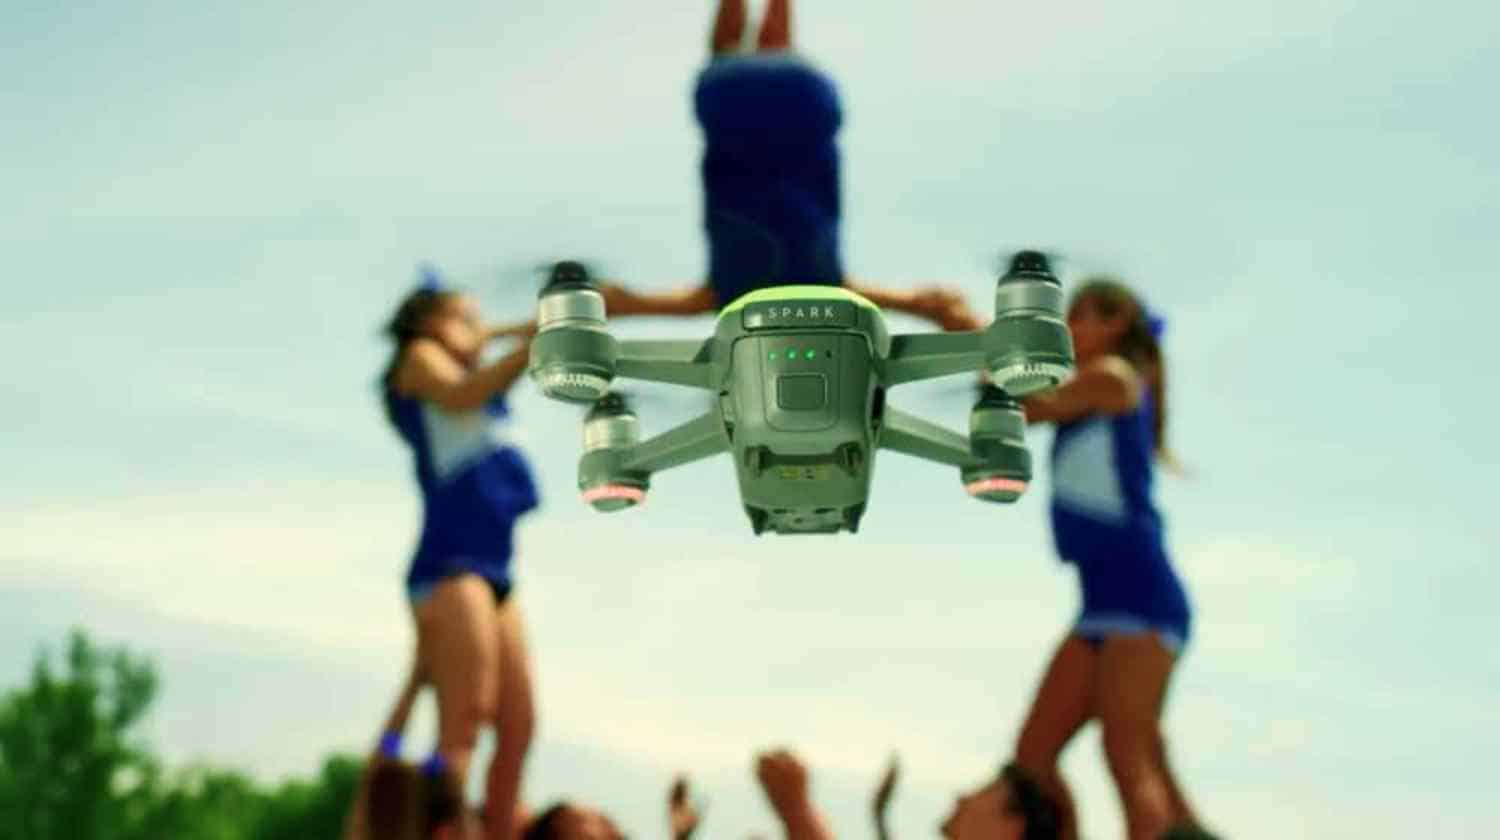 Feature | Flying drone with cheerleader on background | Dji Spark | 7 Most Popular Drone Reviews